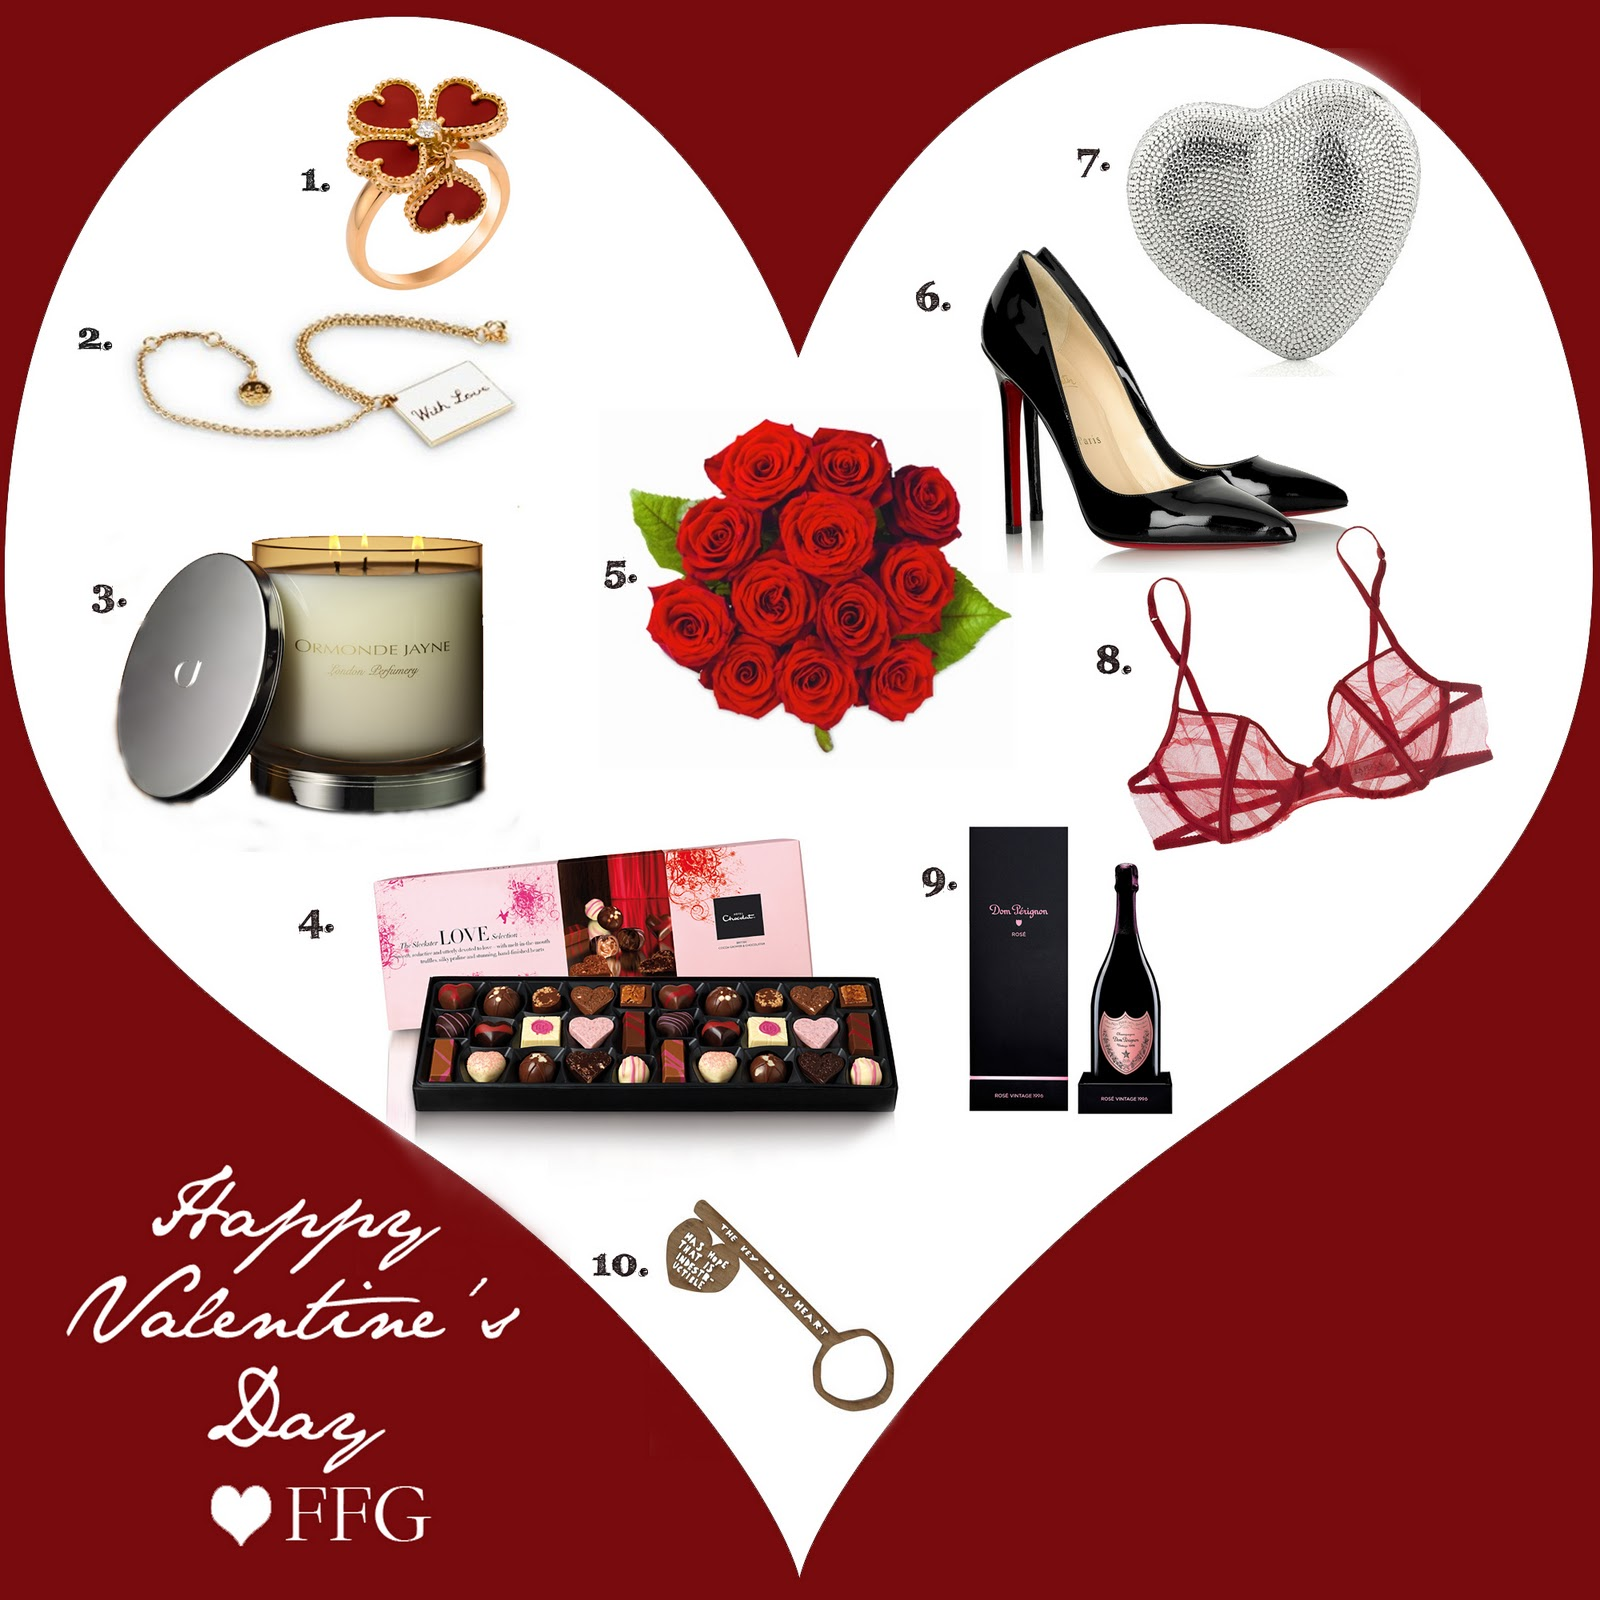 Valentine daughter – Gift Ideas From Gifts.com